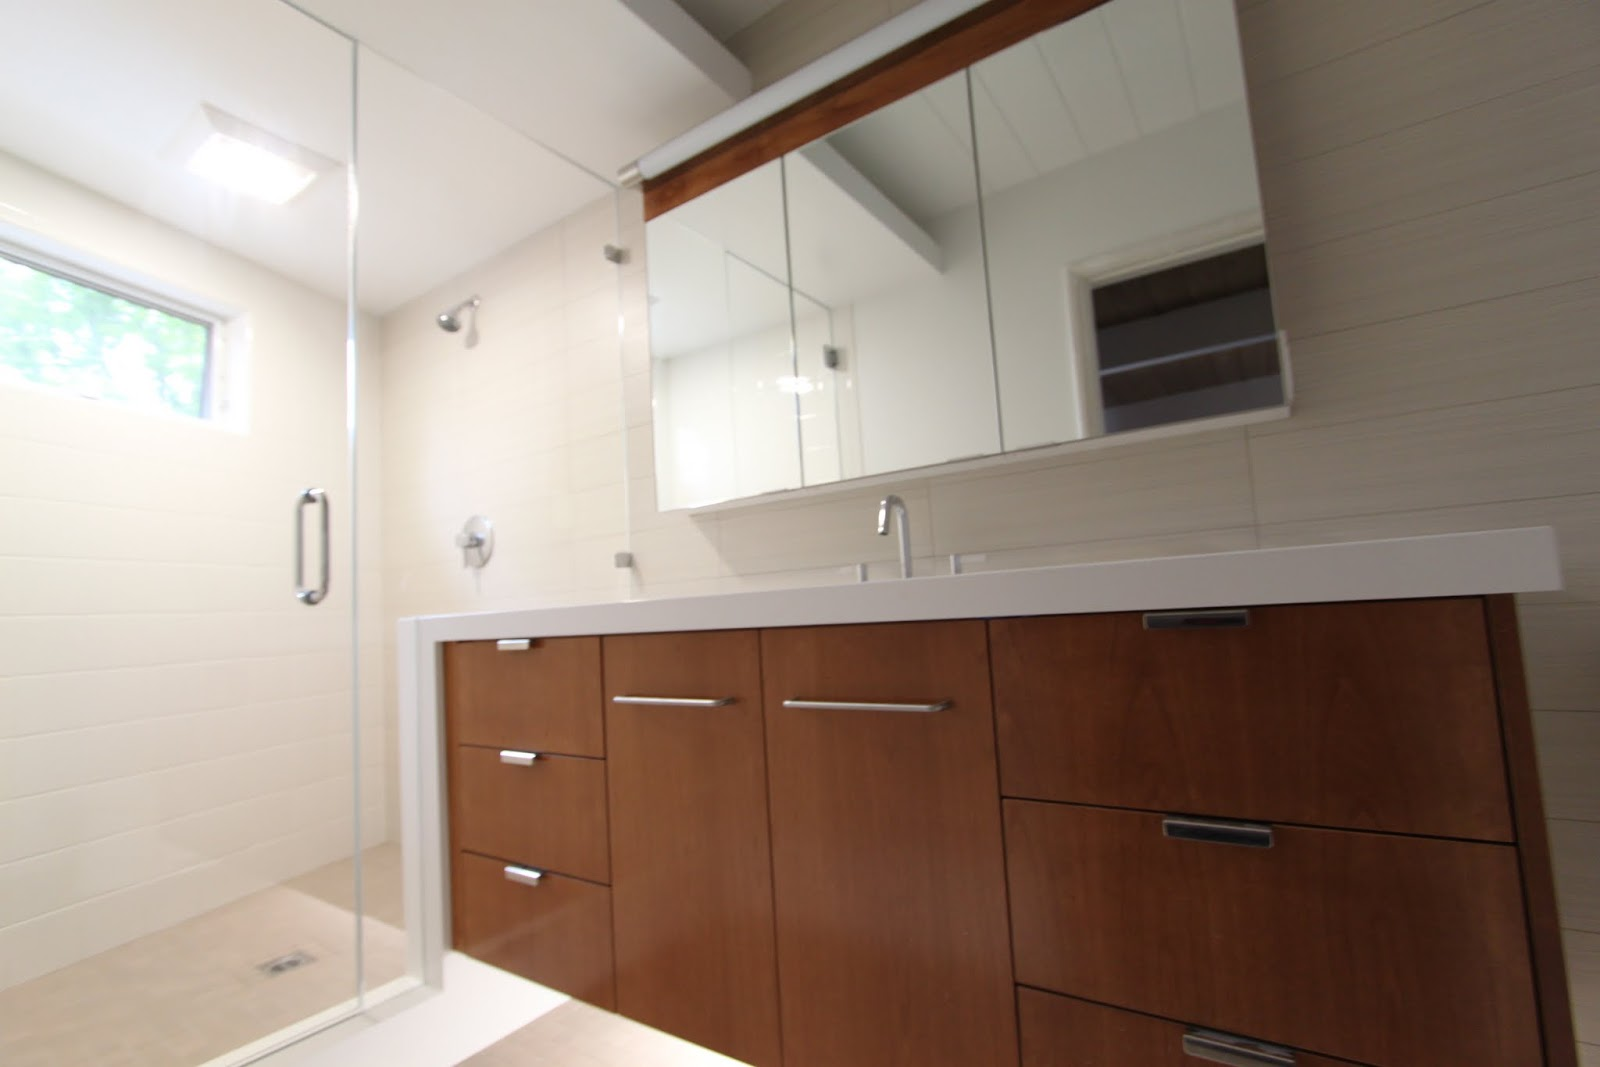 Fabulous Master Shower And Cabinet We Have Only One Sink So Can Two Banks Of Drawers Storage Is A Premium In Mid Century Modern